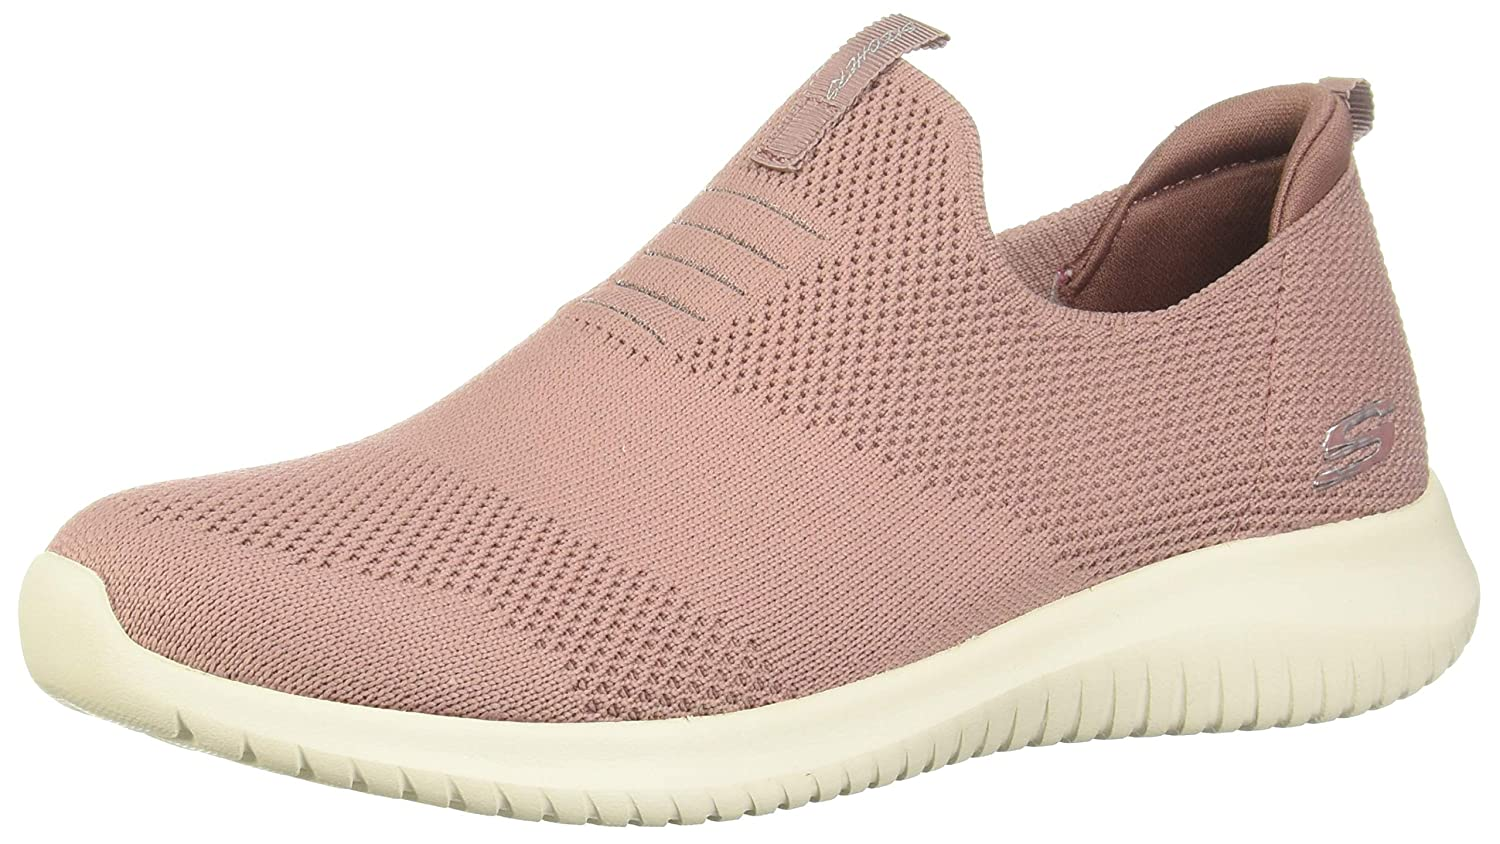 Skechers Skechers Skechers Damen Ultra Flex-First Take Turnschuh 822adb